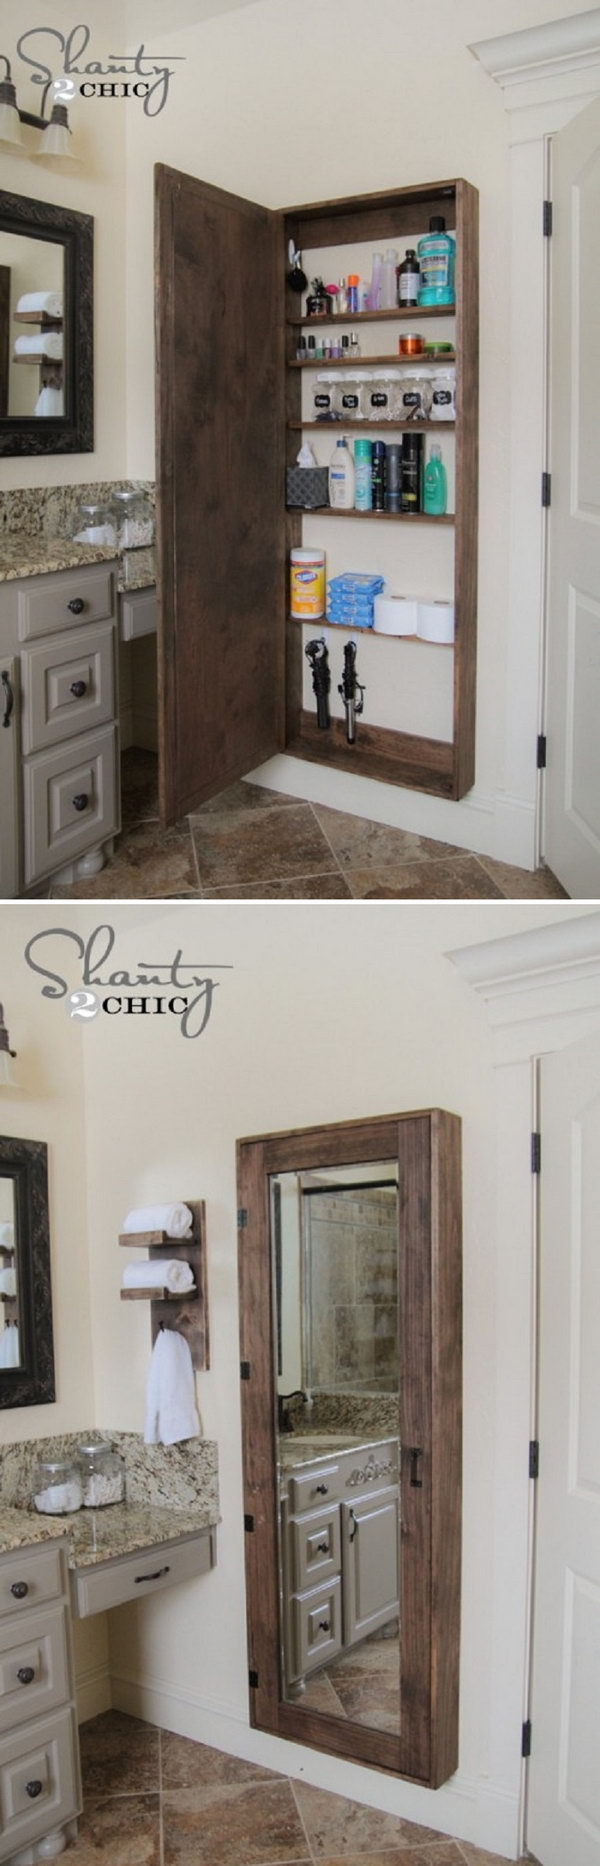 A big bathroom storage case behind the mirror to hold all the goodies,